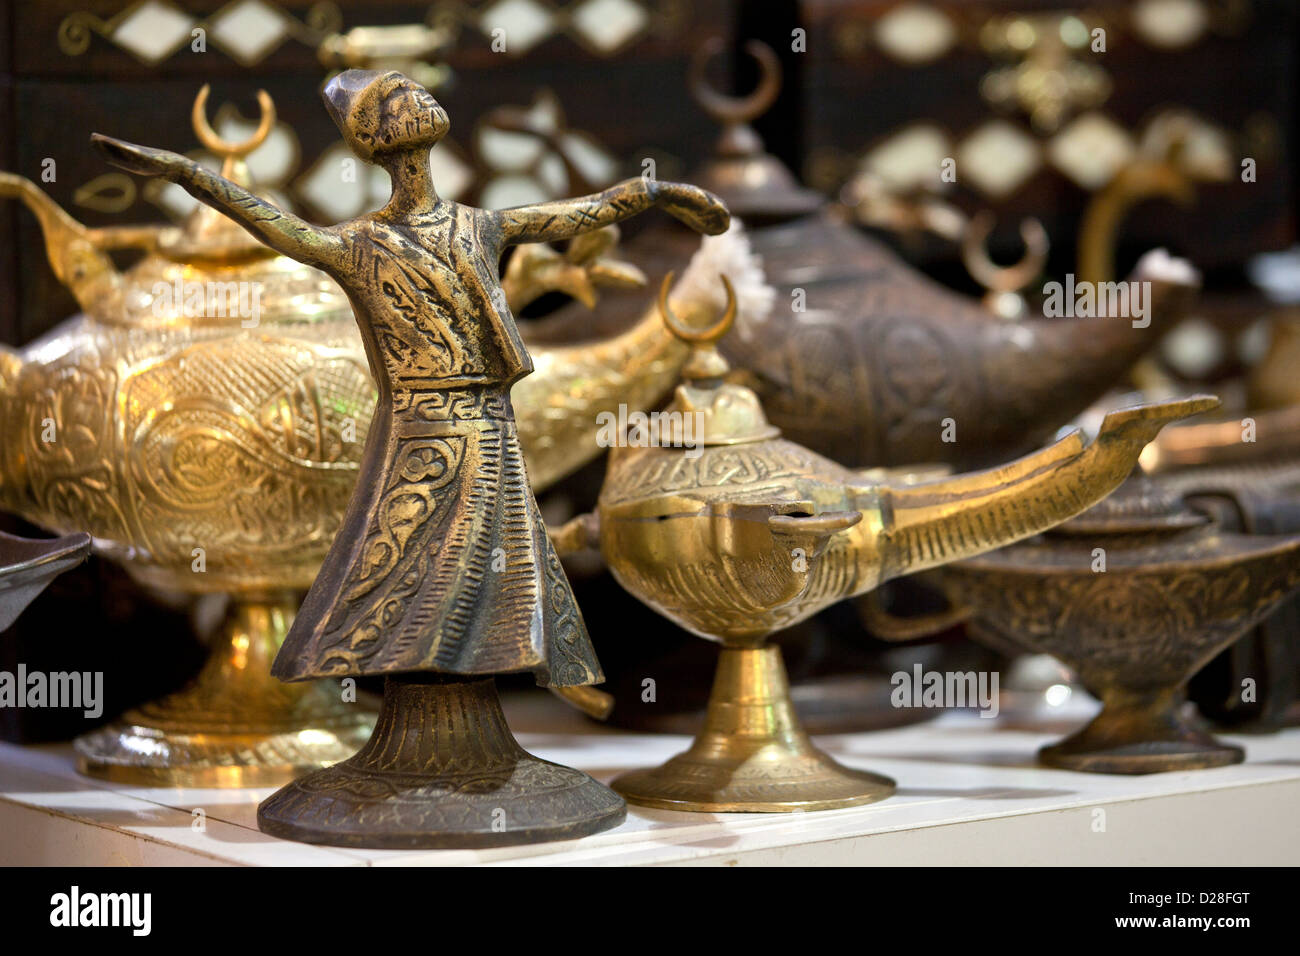 Turkish whirling dancing dervish model souvenir and magic Aladin oil lamp lamps for sale in Grand Bazaar Market Stock Photo